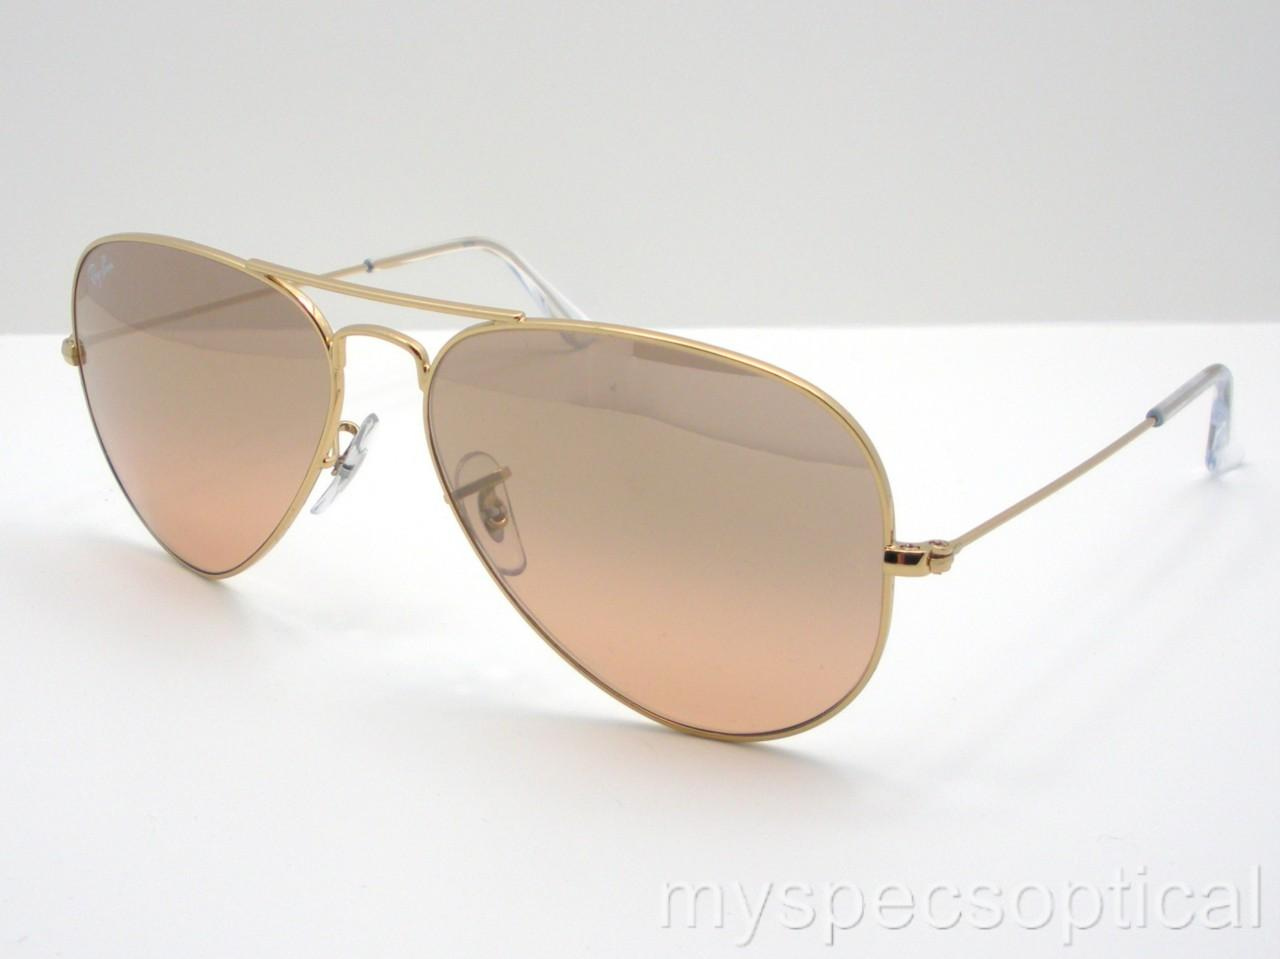 3025 Ray Ban 001 3e   City of Kenmore, Washington e36e28eaf4e2